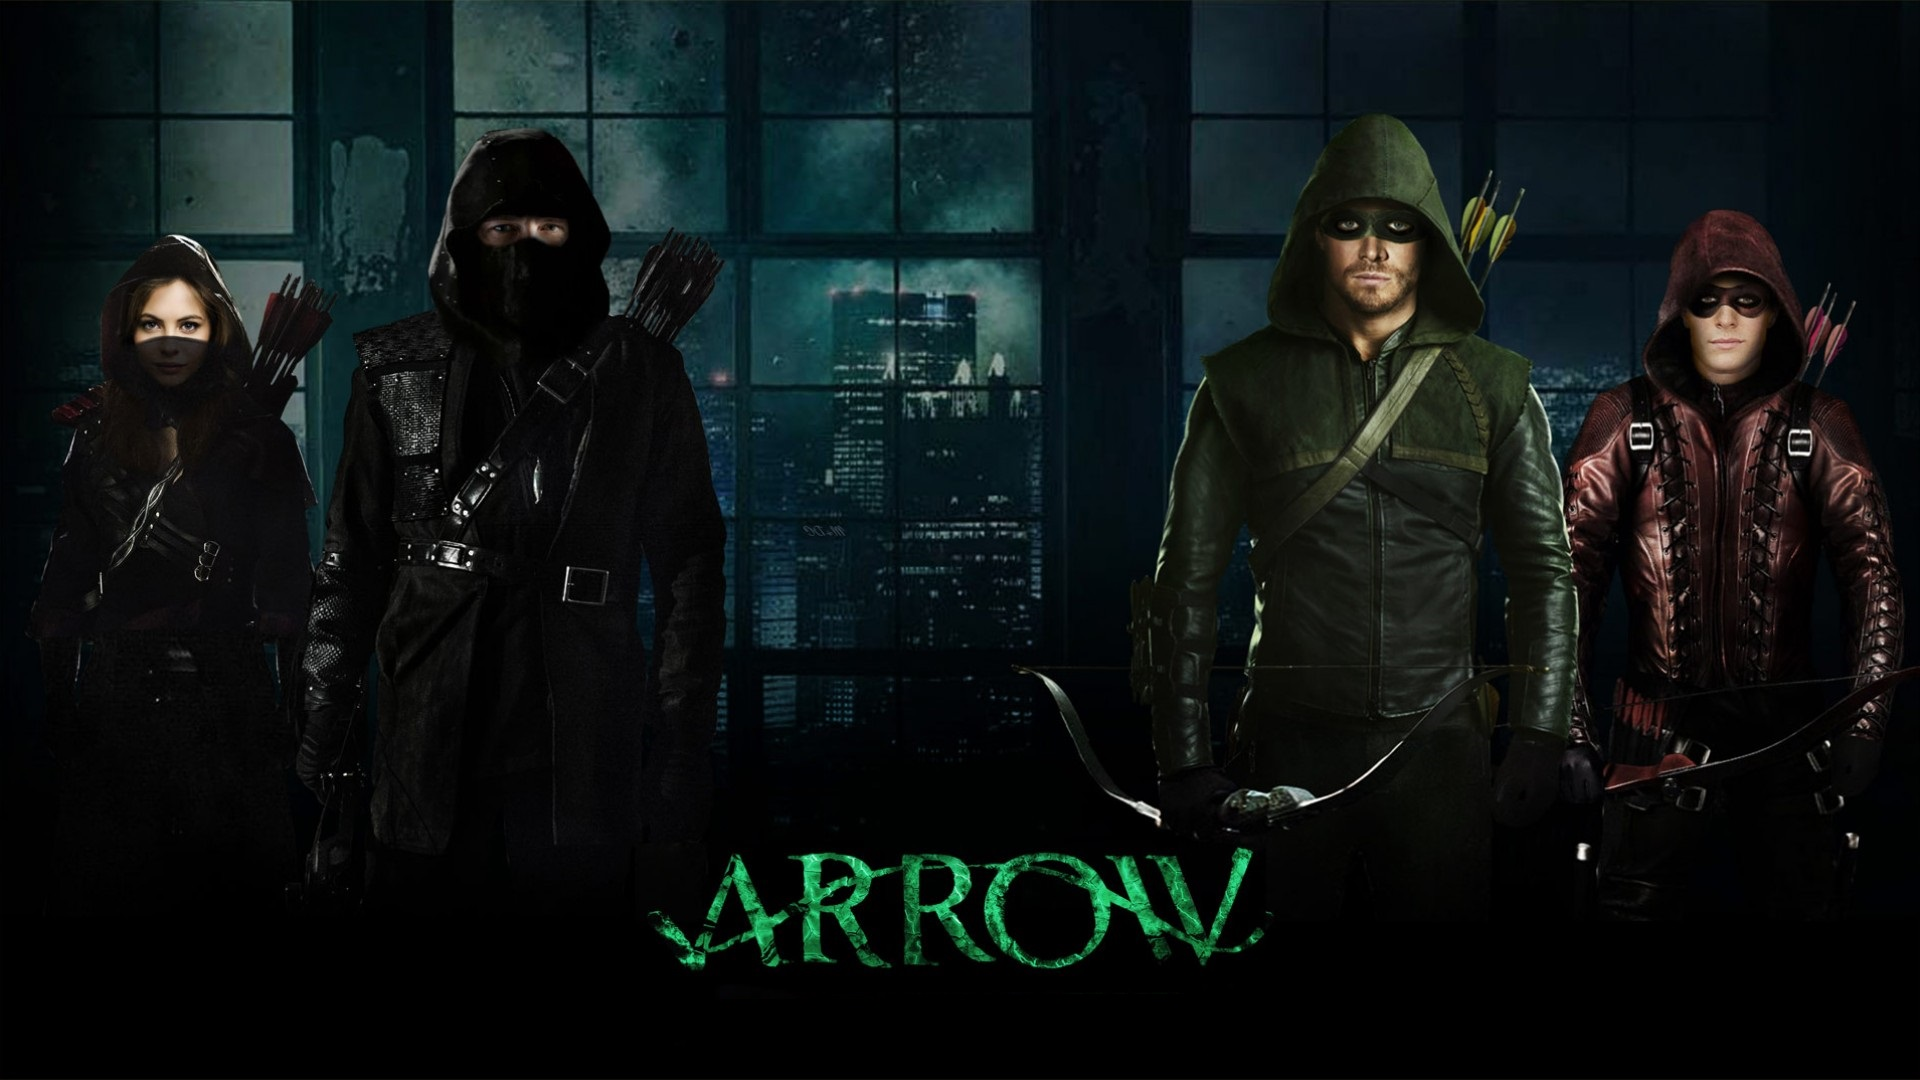 Arrow 6x17 - Brothers in Arms